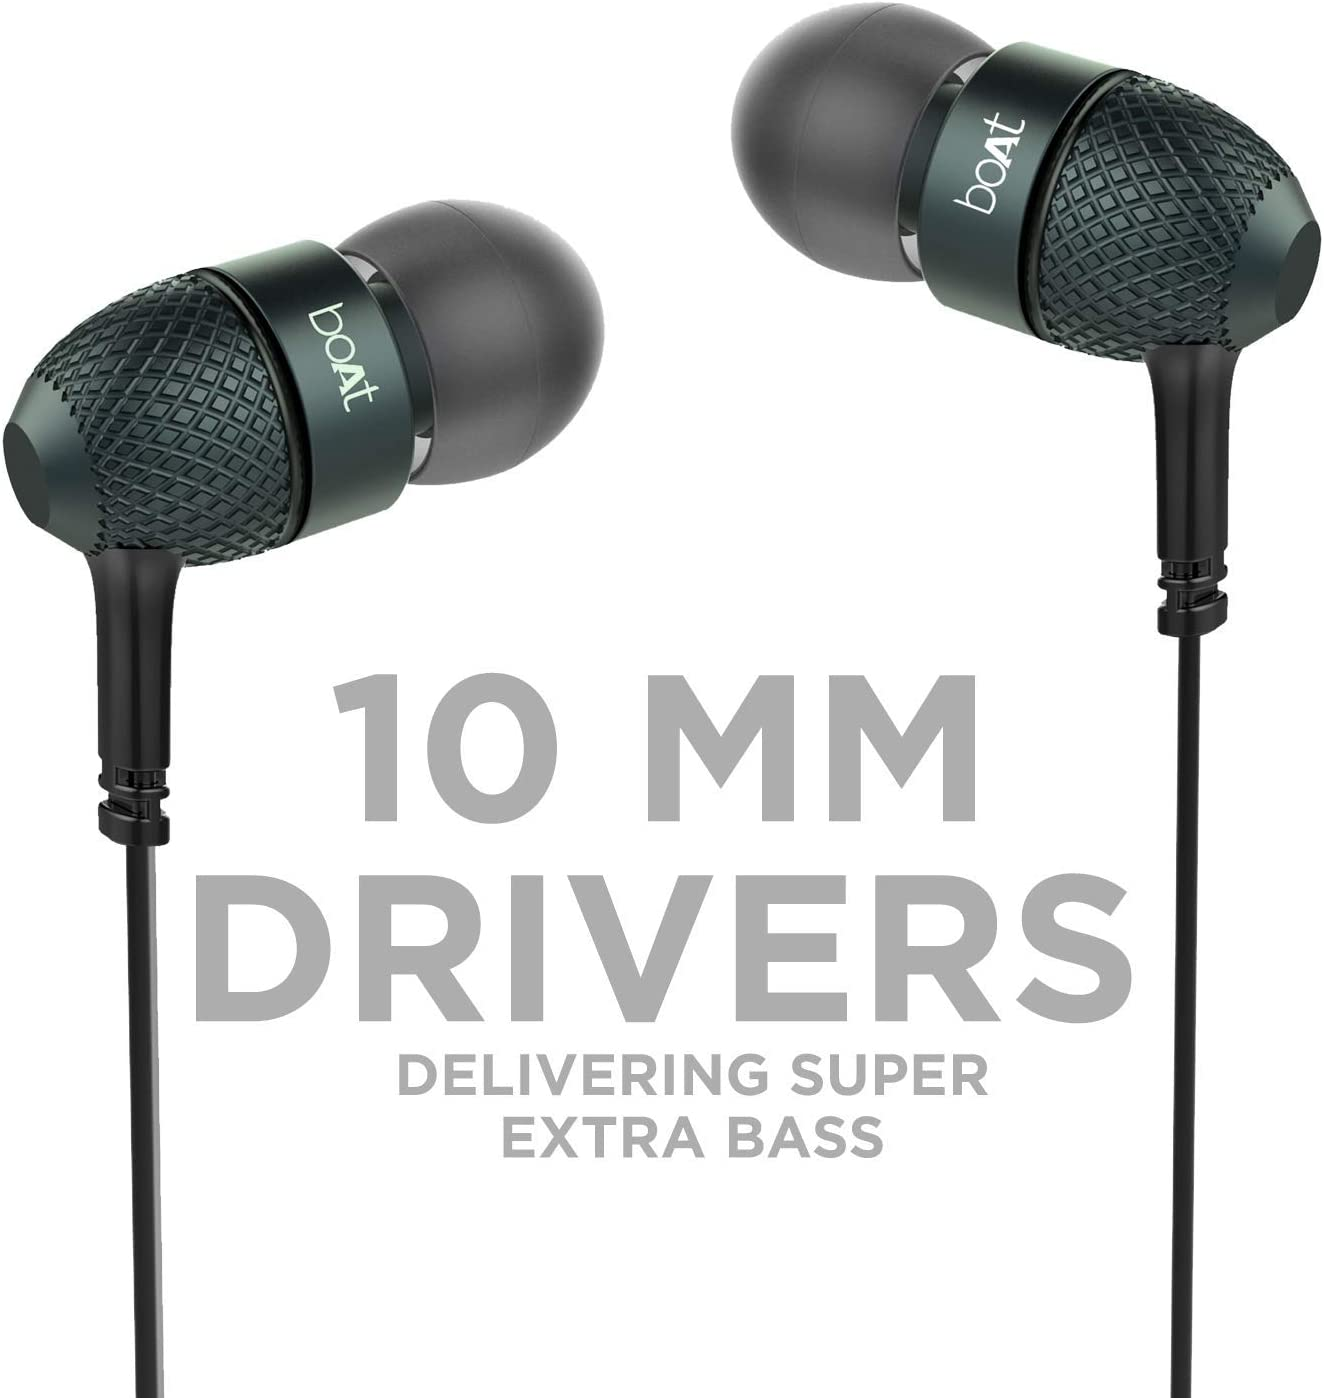 Amazon Com Boat Bassheads 225 In Ear Super Extra Bass Headphones With One Button Mic